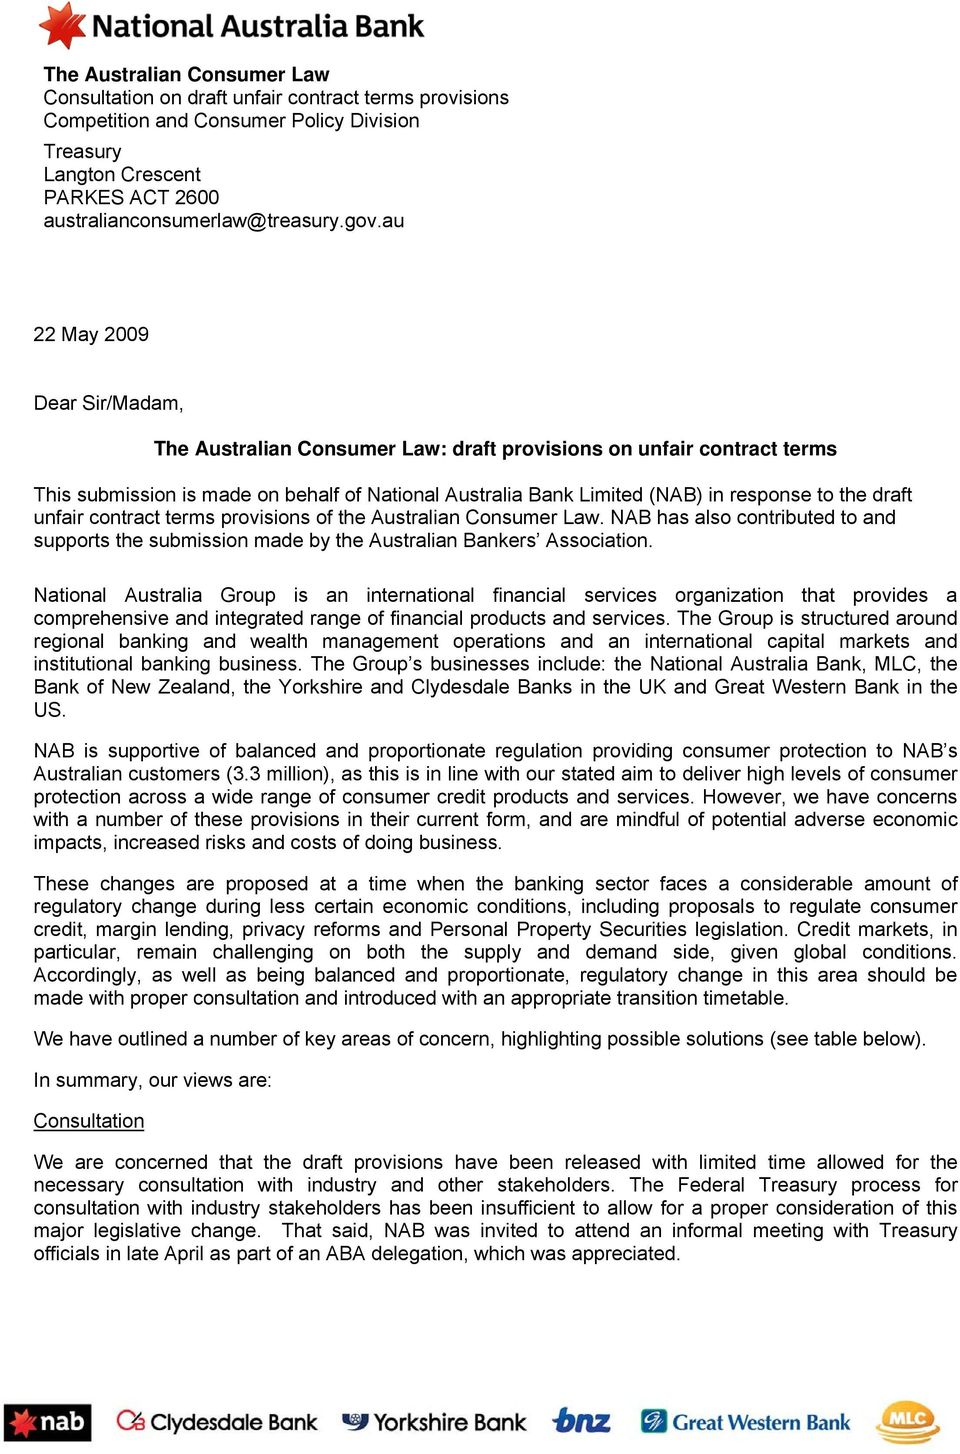 draft unfair contract terms provisions of the Australian Consumer Law. NAB has also contributed to and supports the submission made by the Australian Bankers Association.